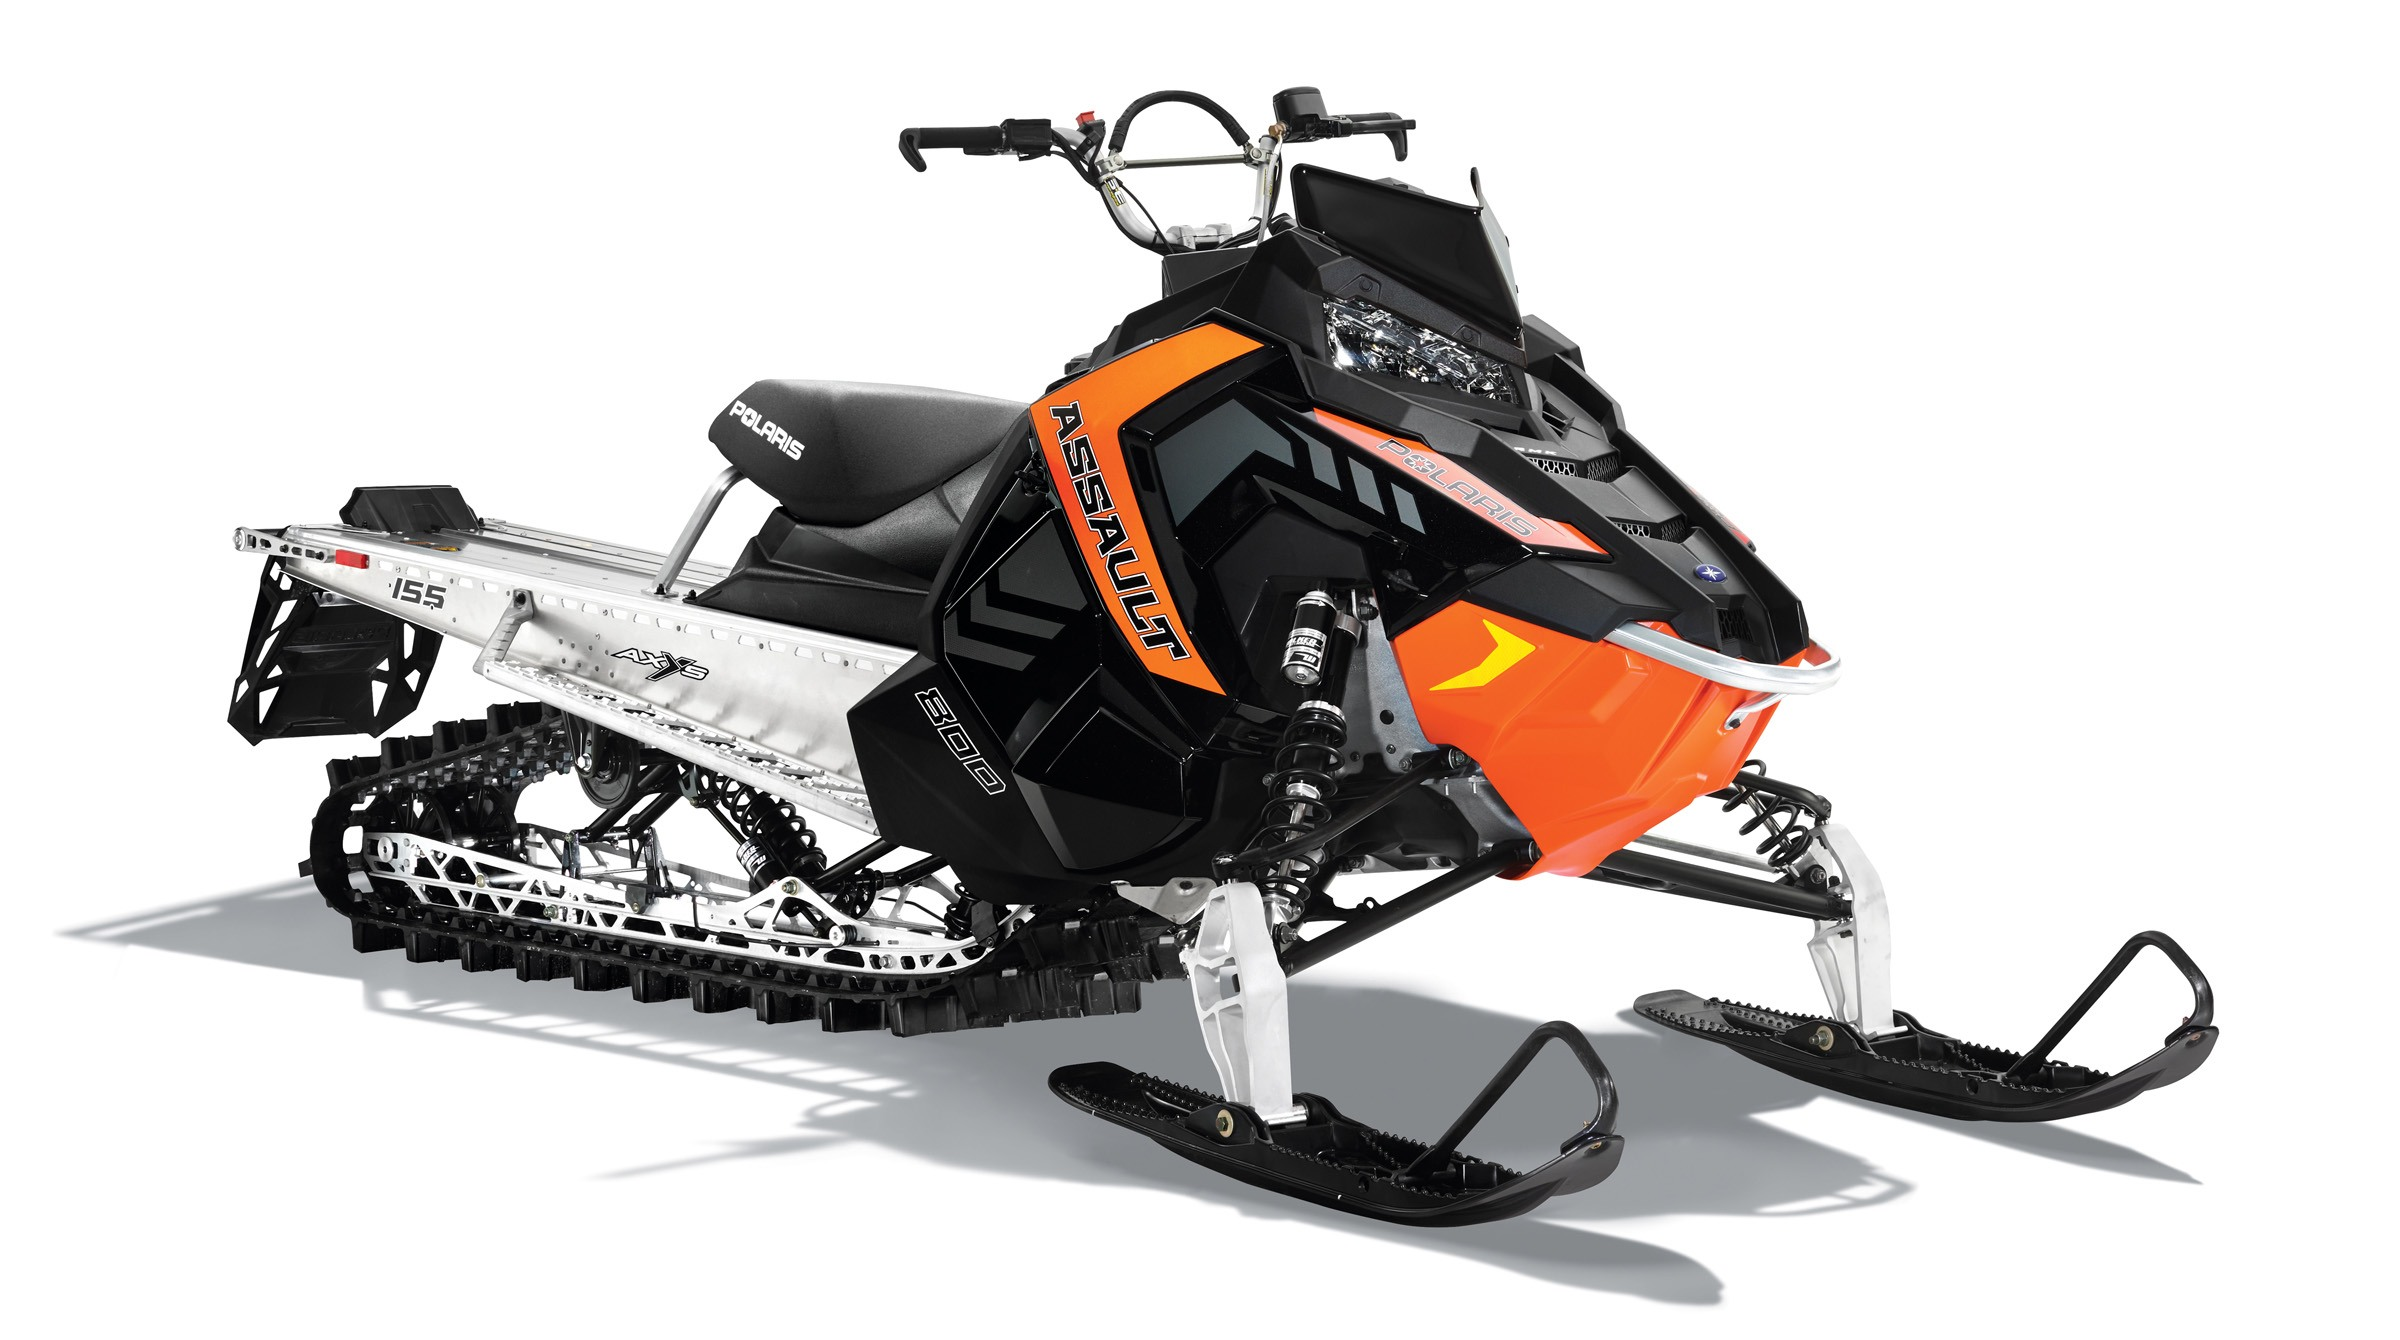 2016 Polaris 800 RMK Assault 155 ES in Lake Mills, Iowa - Photo 1